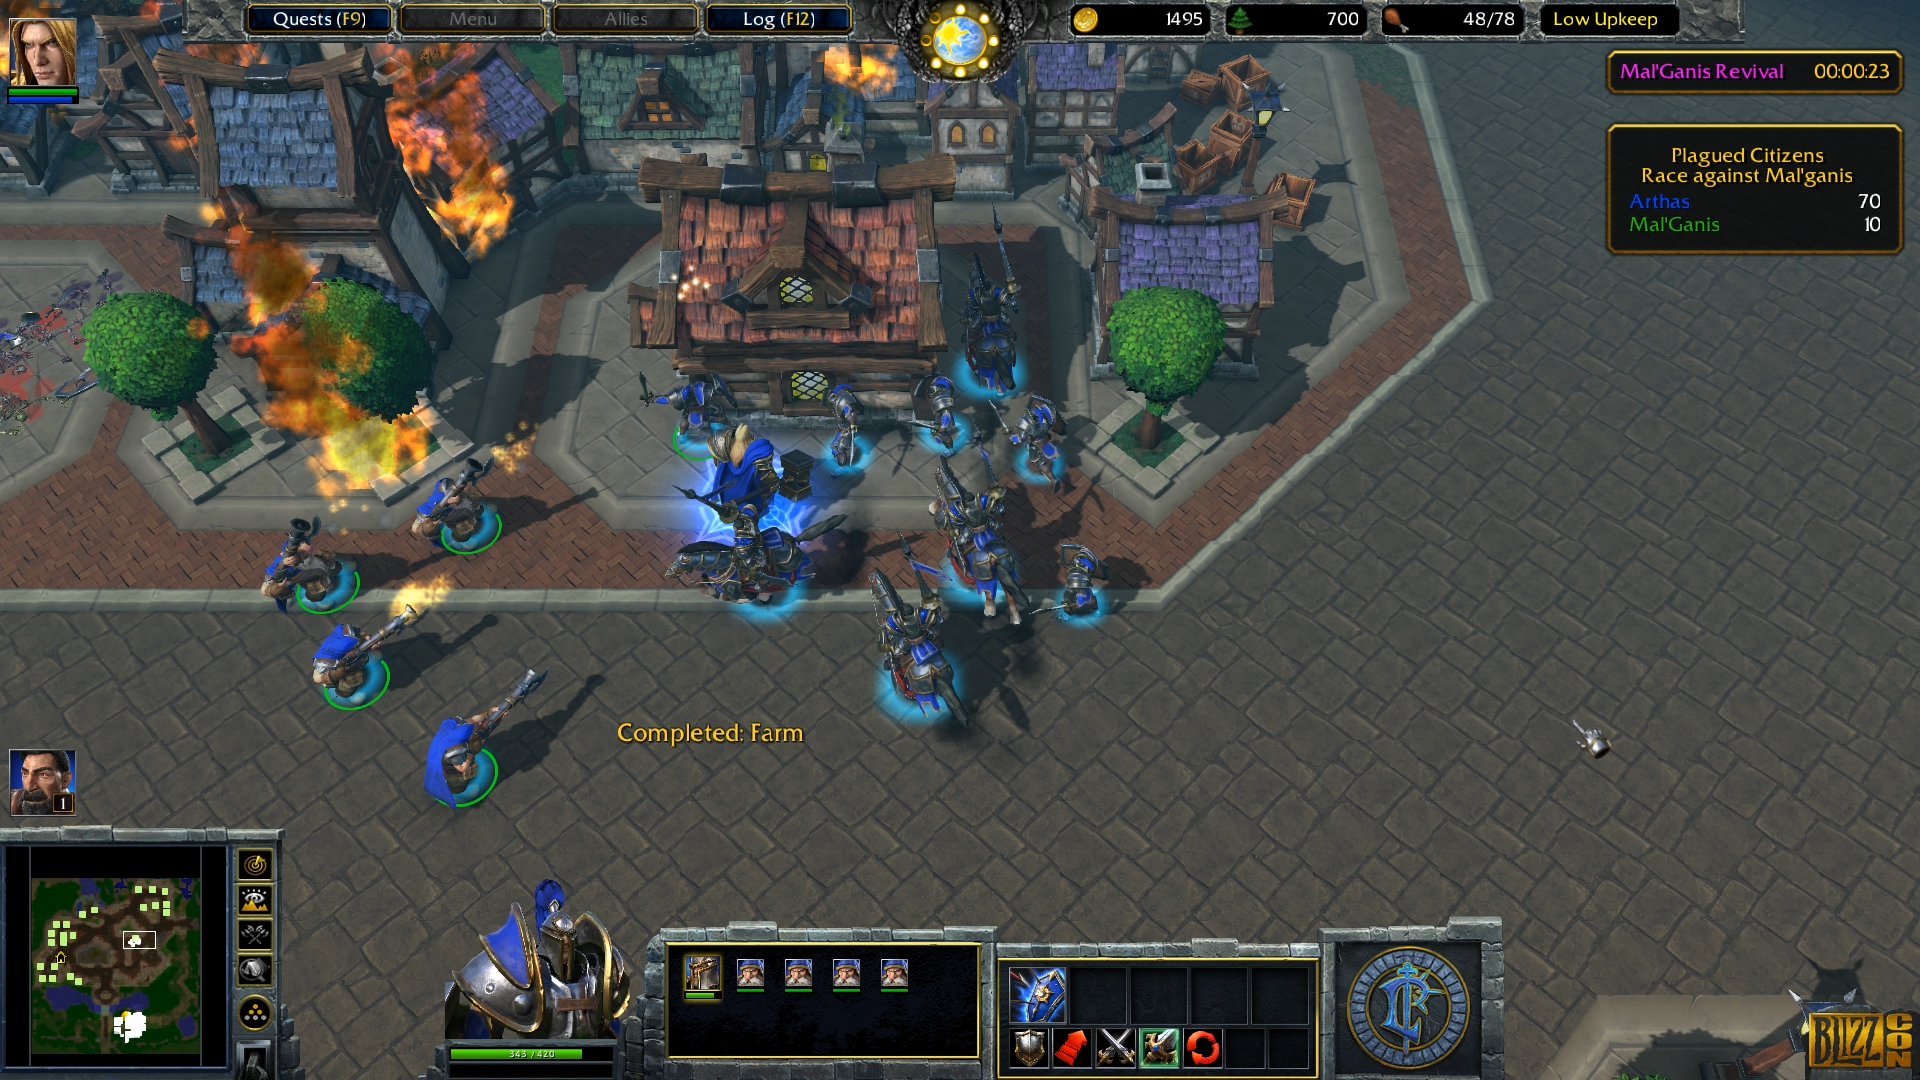 BlizzCon 2018: Warcraft III: Reforged is a remaster and update of